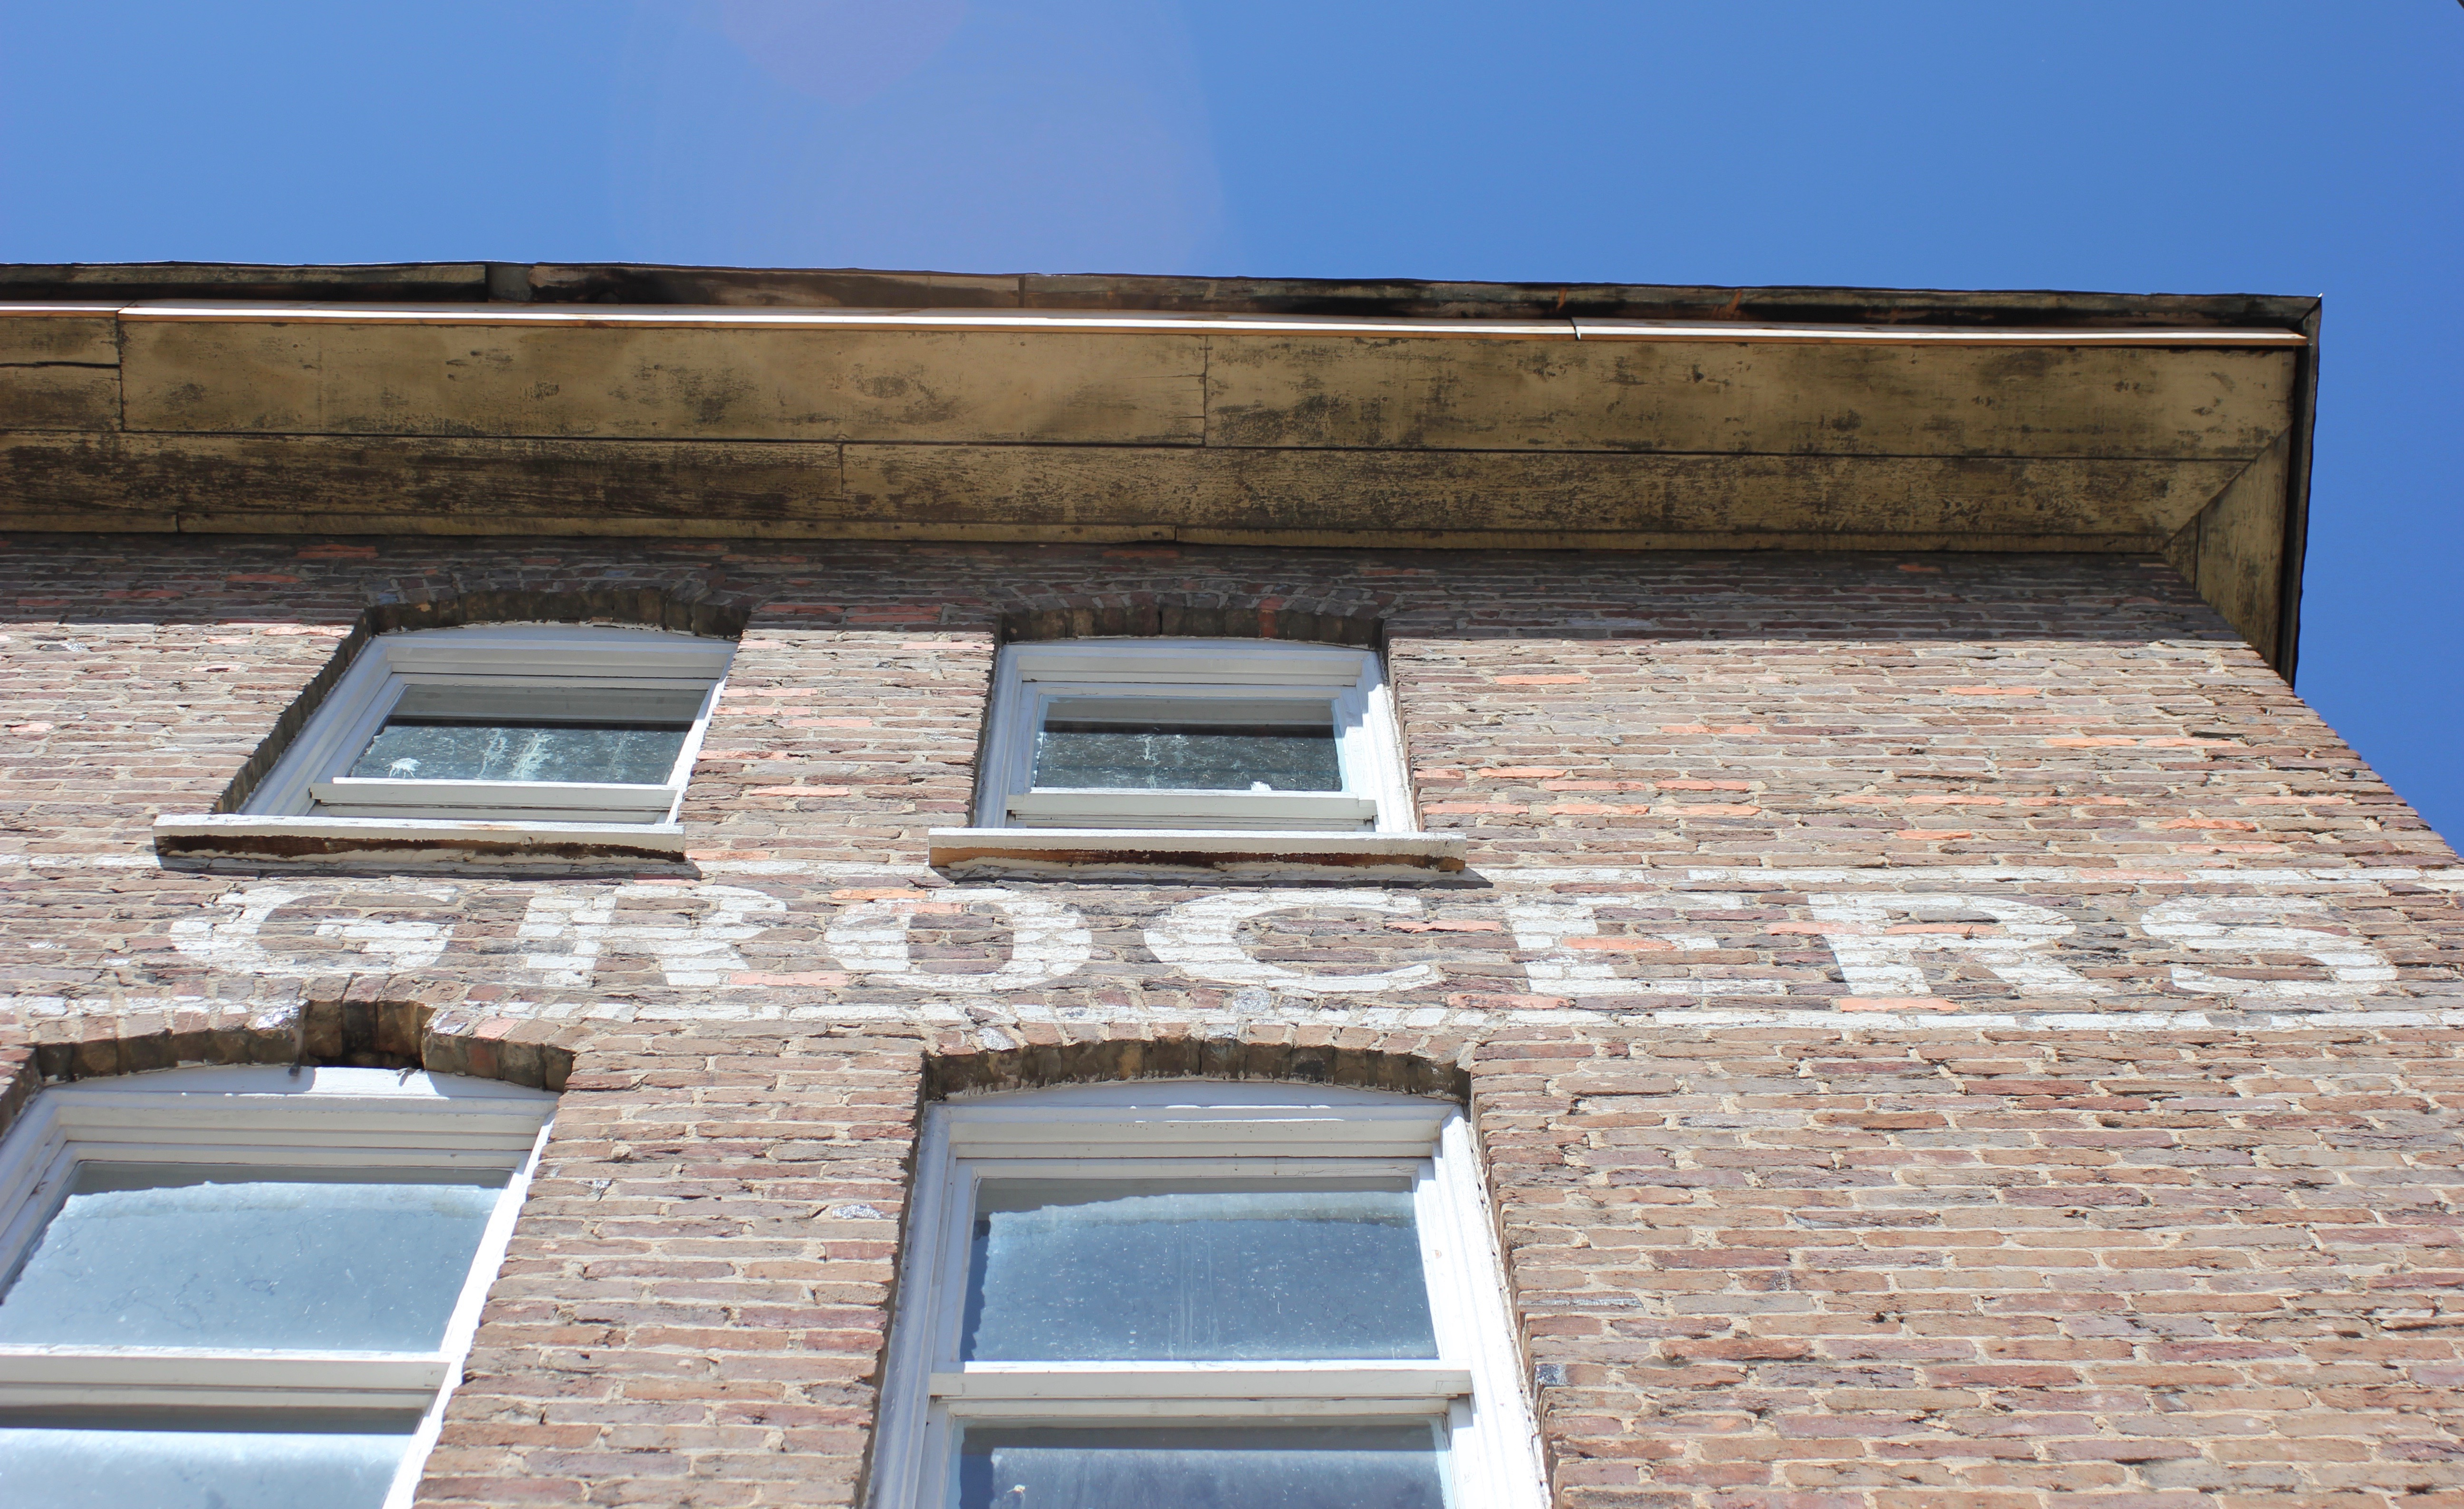 """A brick building with """"Grocers"""" painted on the side."""